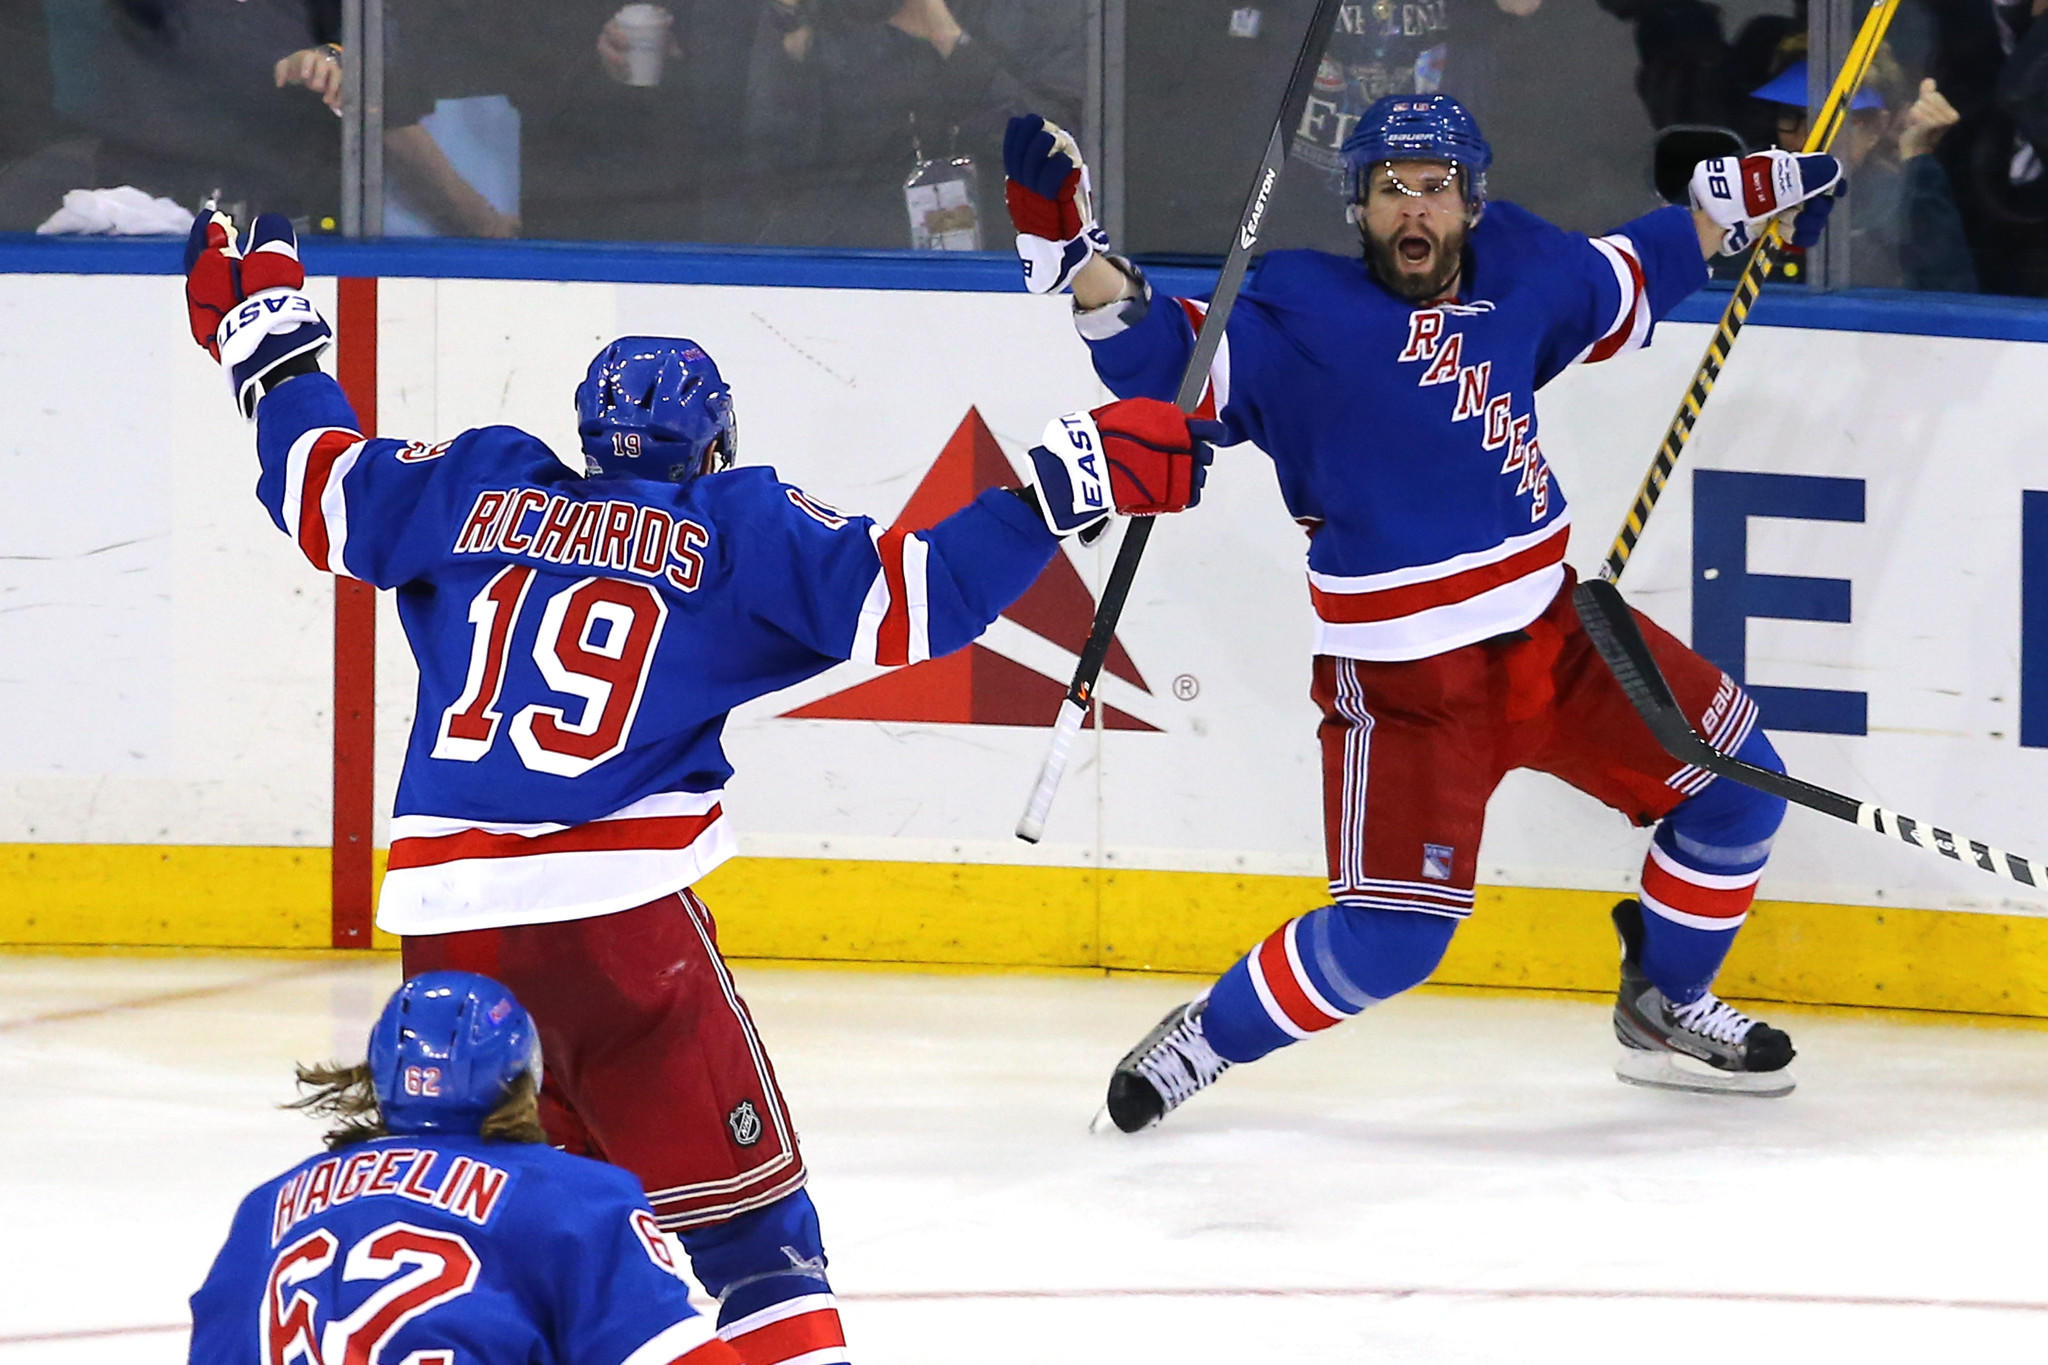 Martin St. Louis, right, celebrates his overtime goal with teammate Brad Richards as the Rangers beat the Canadiens 3-2 to take a 3-1 series lead.